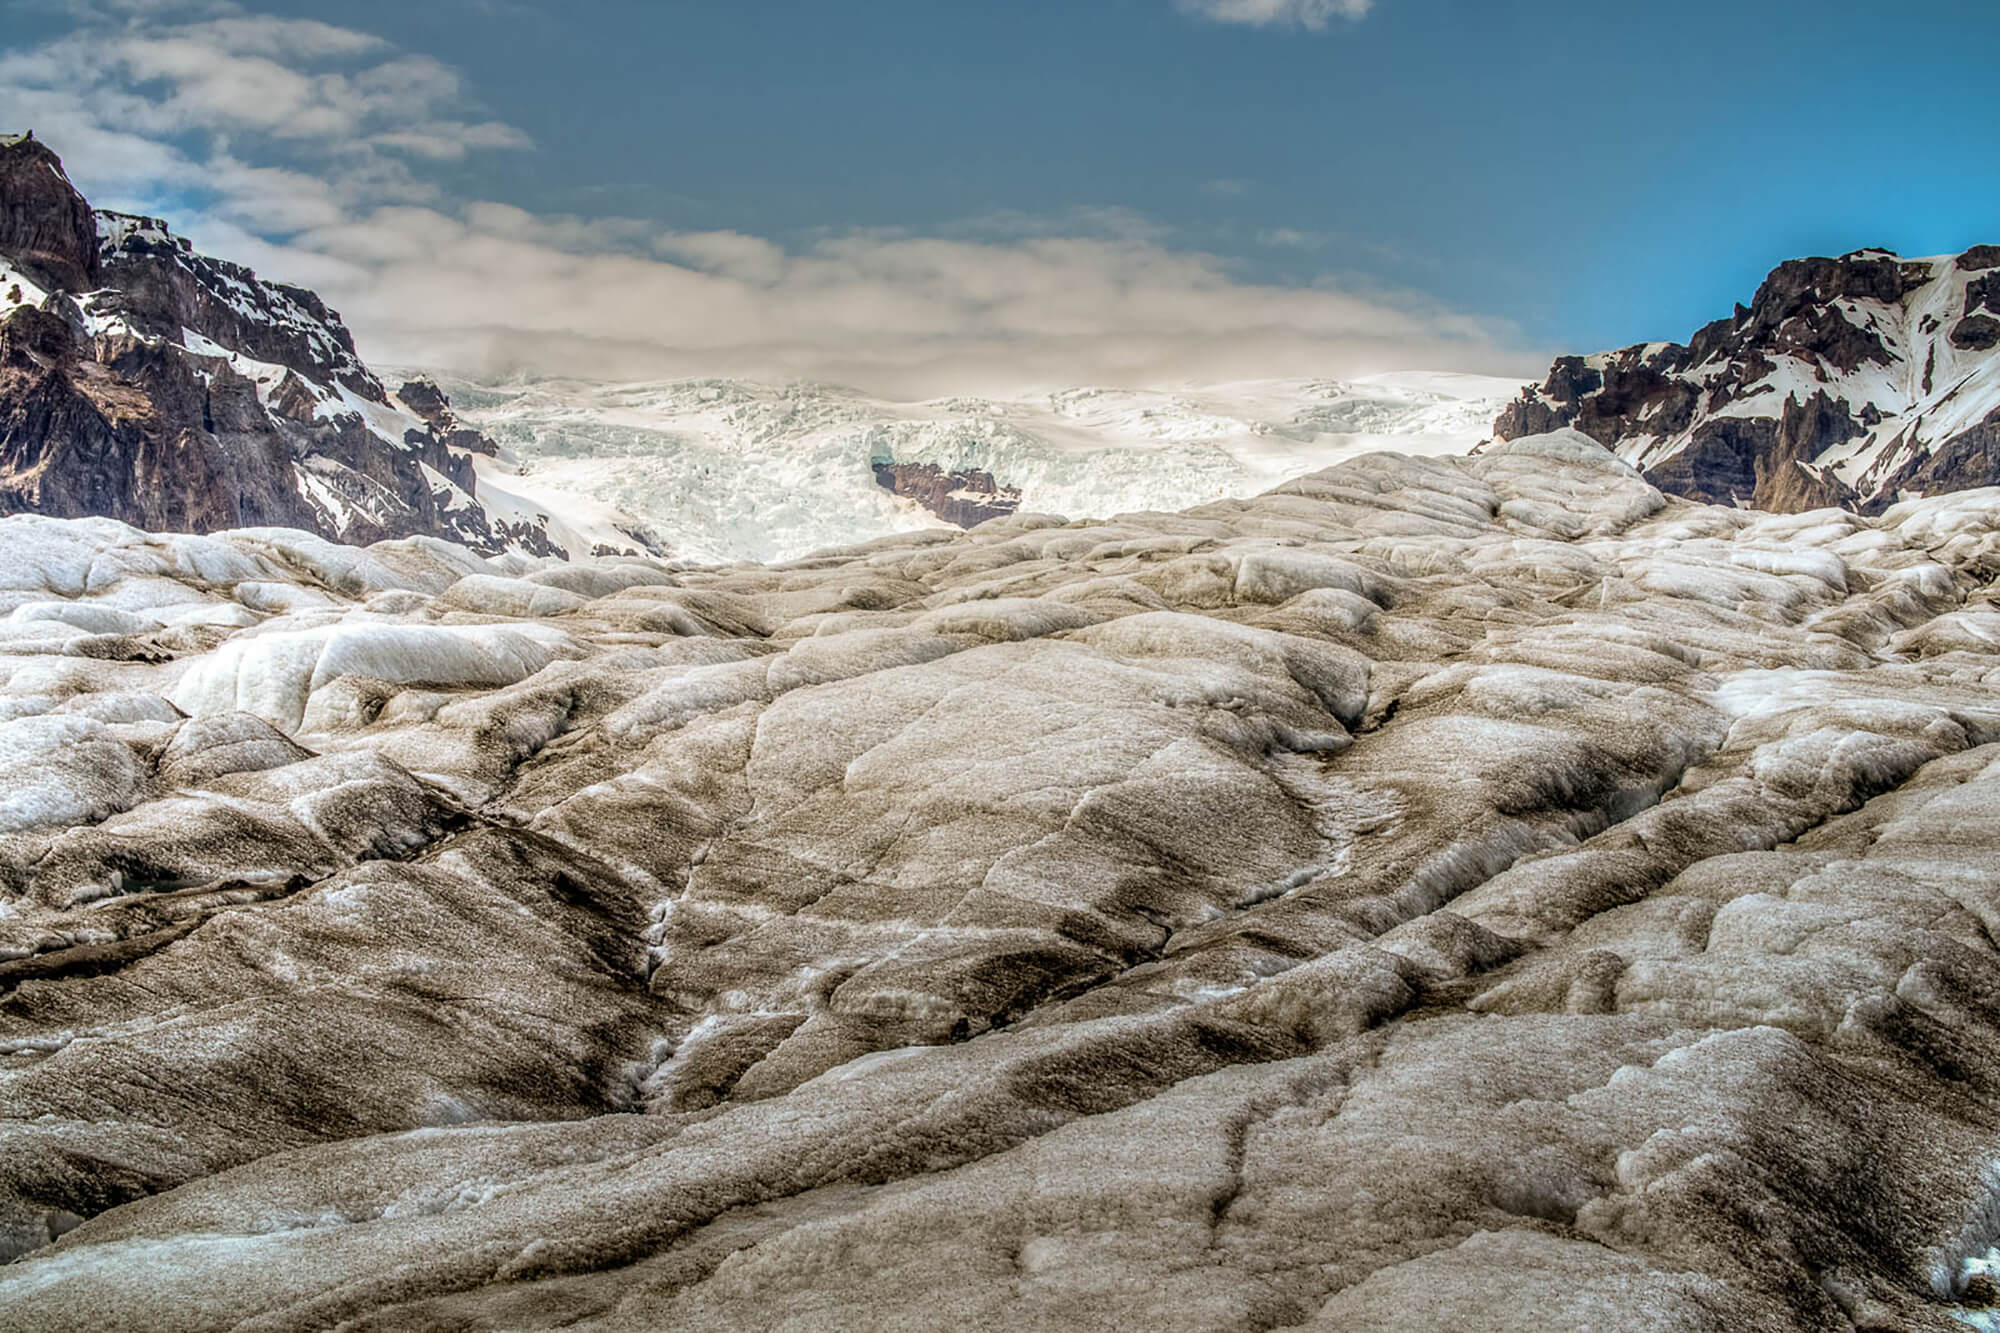 The surface of Kvíárjökull glacier in Iceland